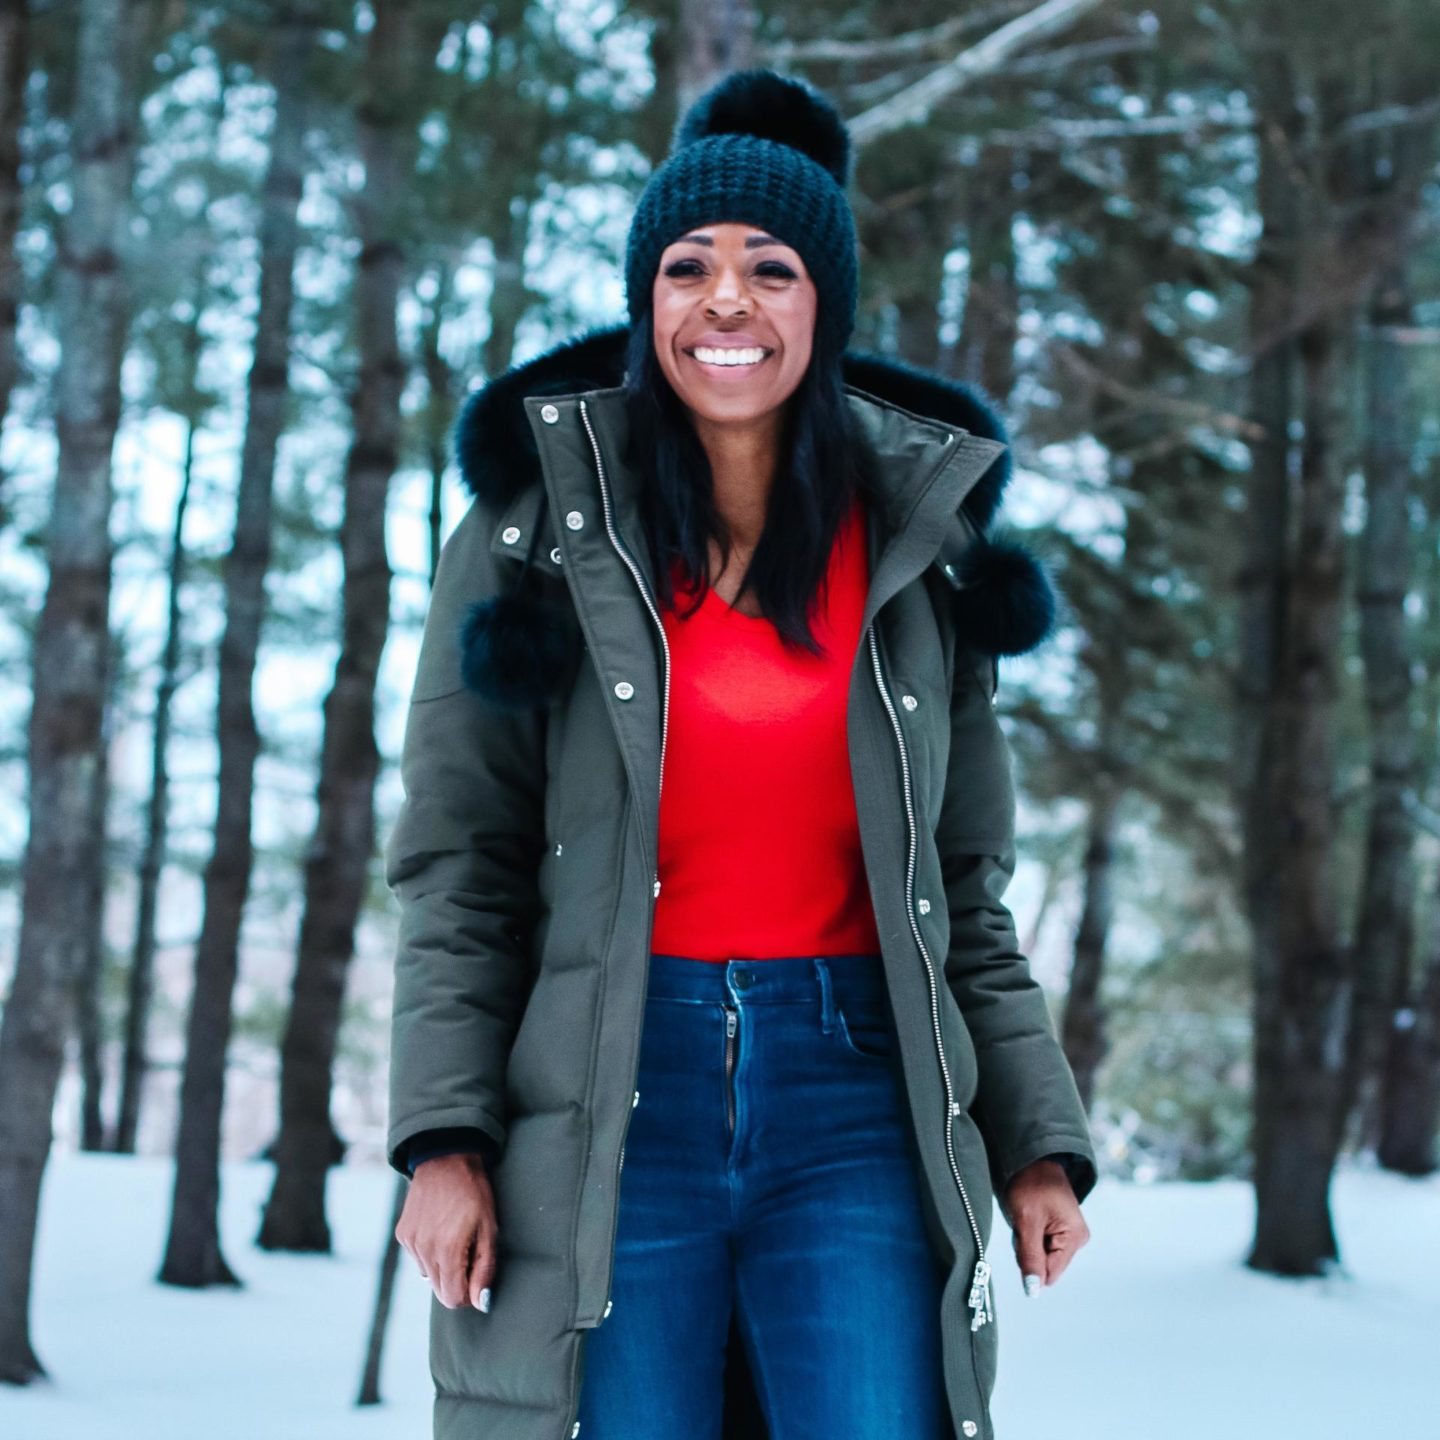 Dominique Baker walking and smiling in the forest wearing a Mooseknuckles parka